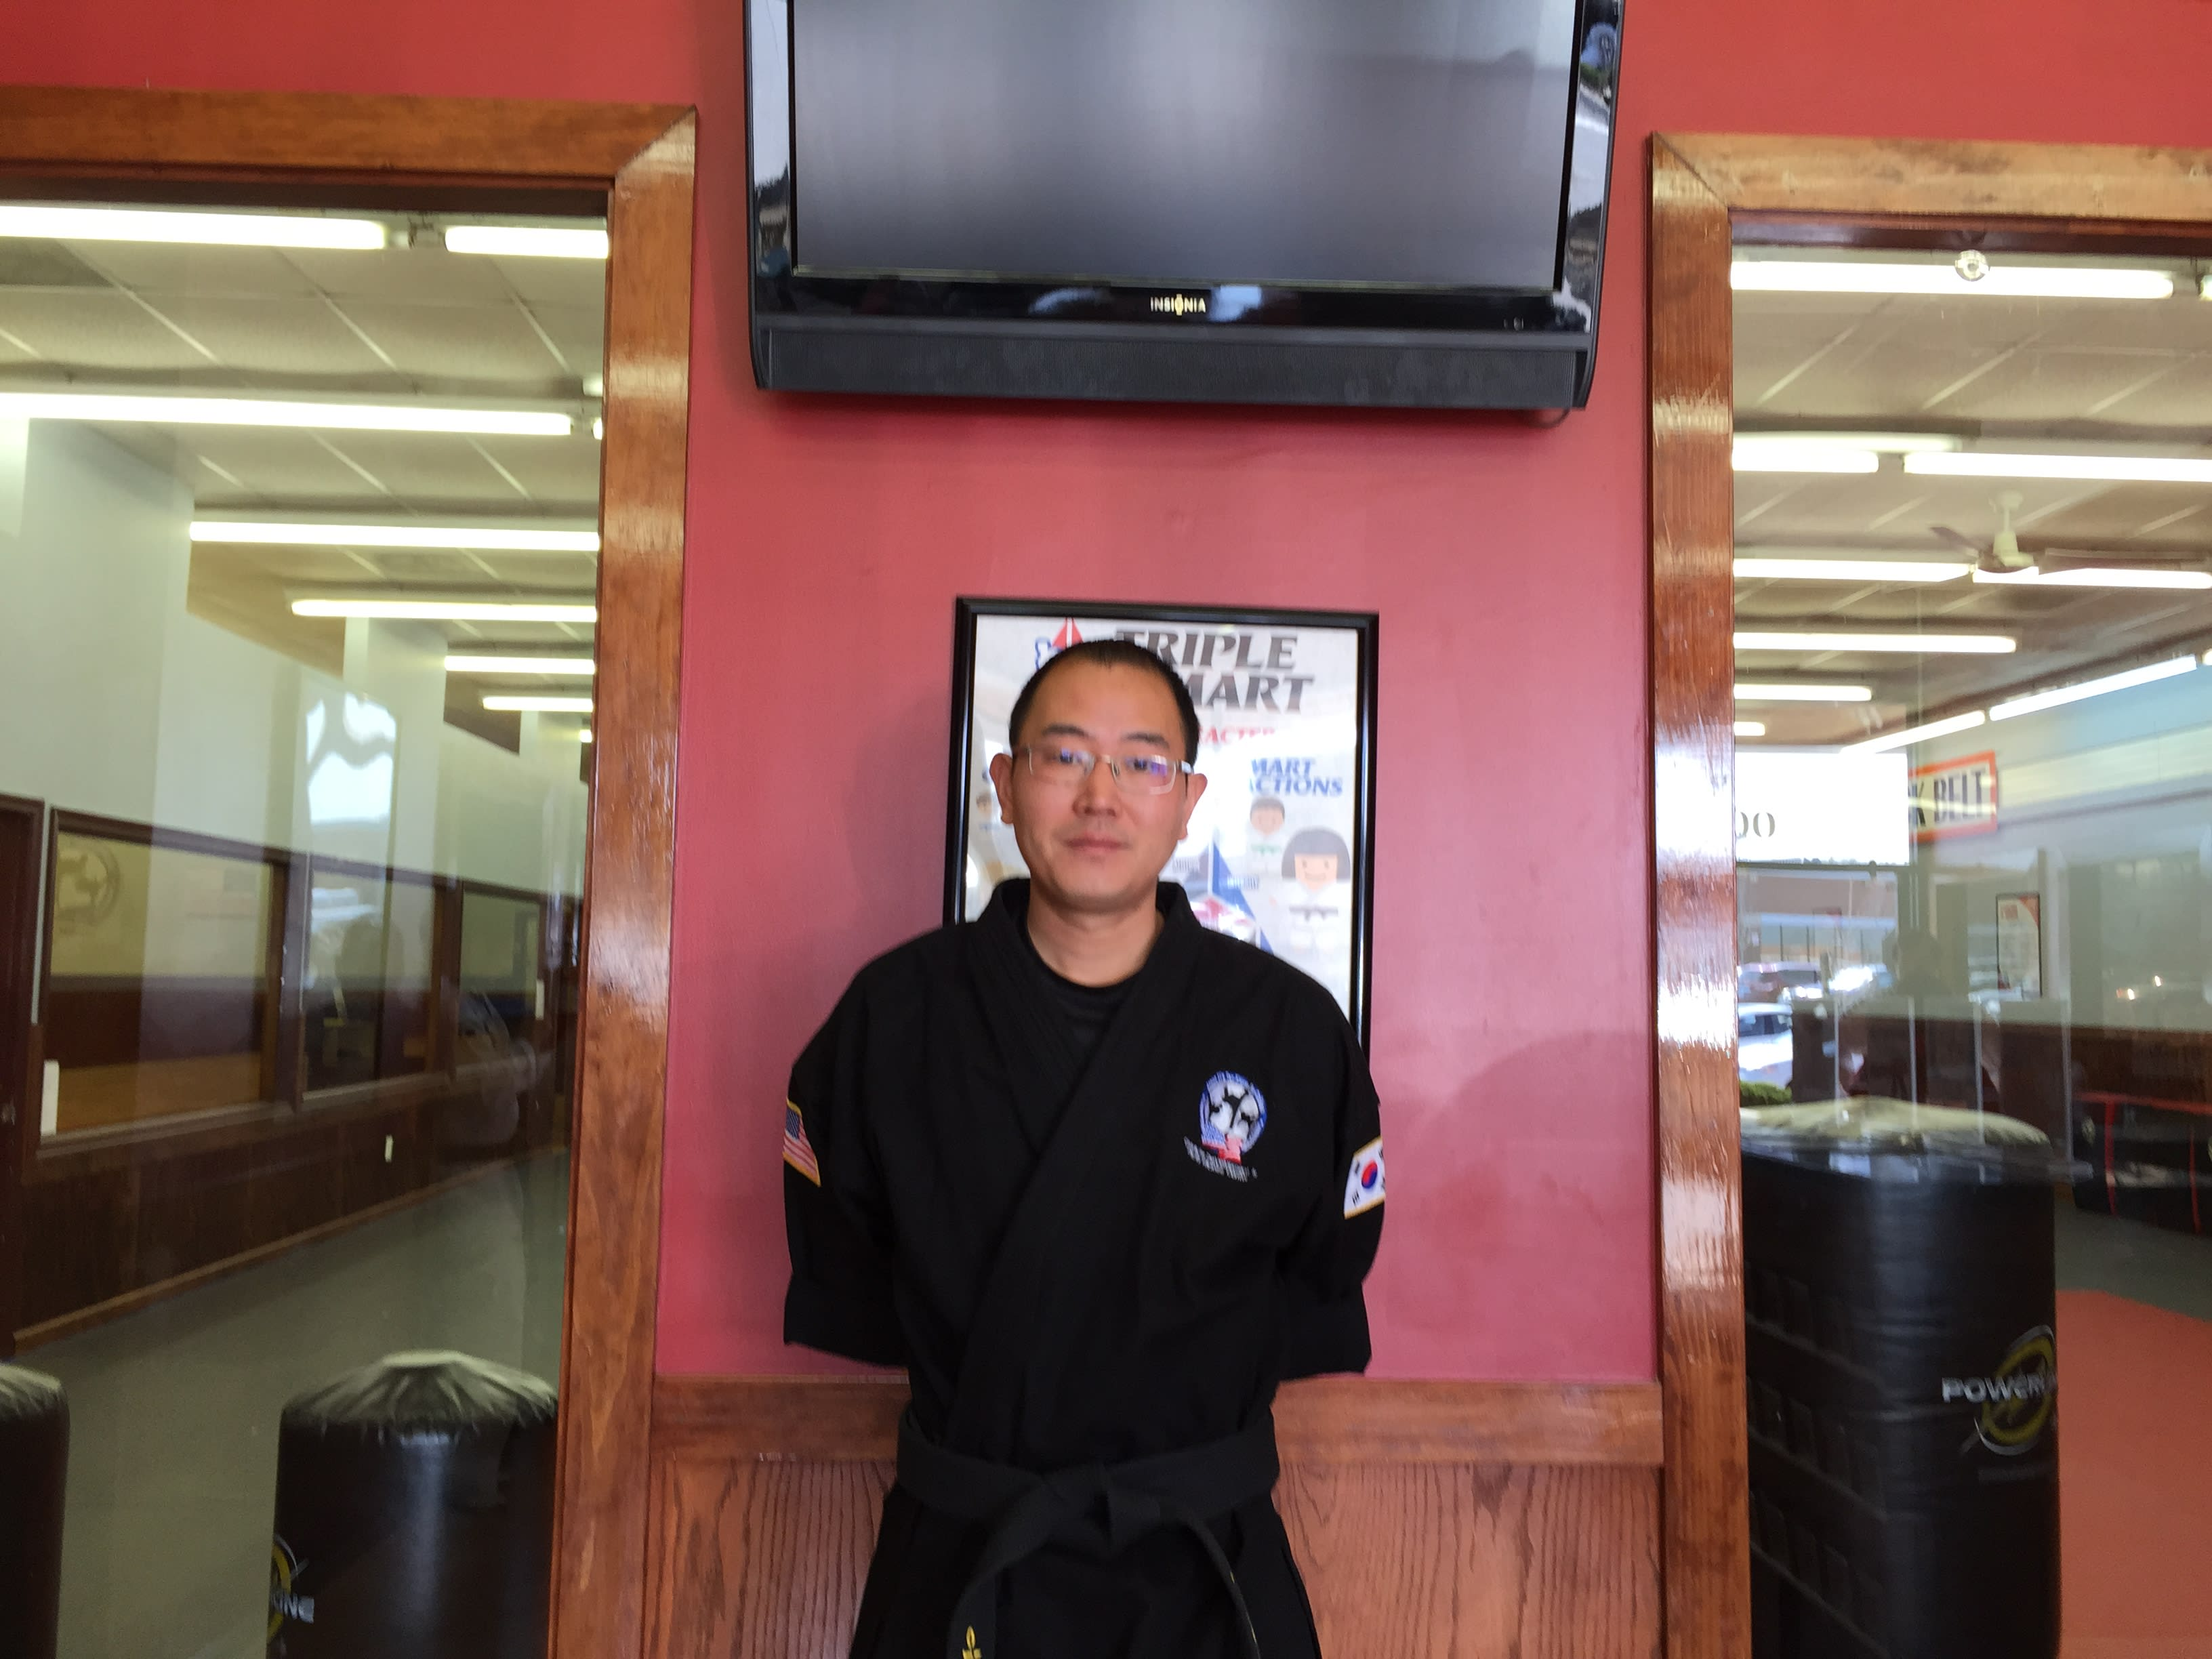 Master John Yoon in Woodbridge - Life Champ Martial Arts